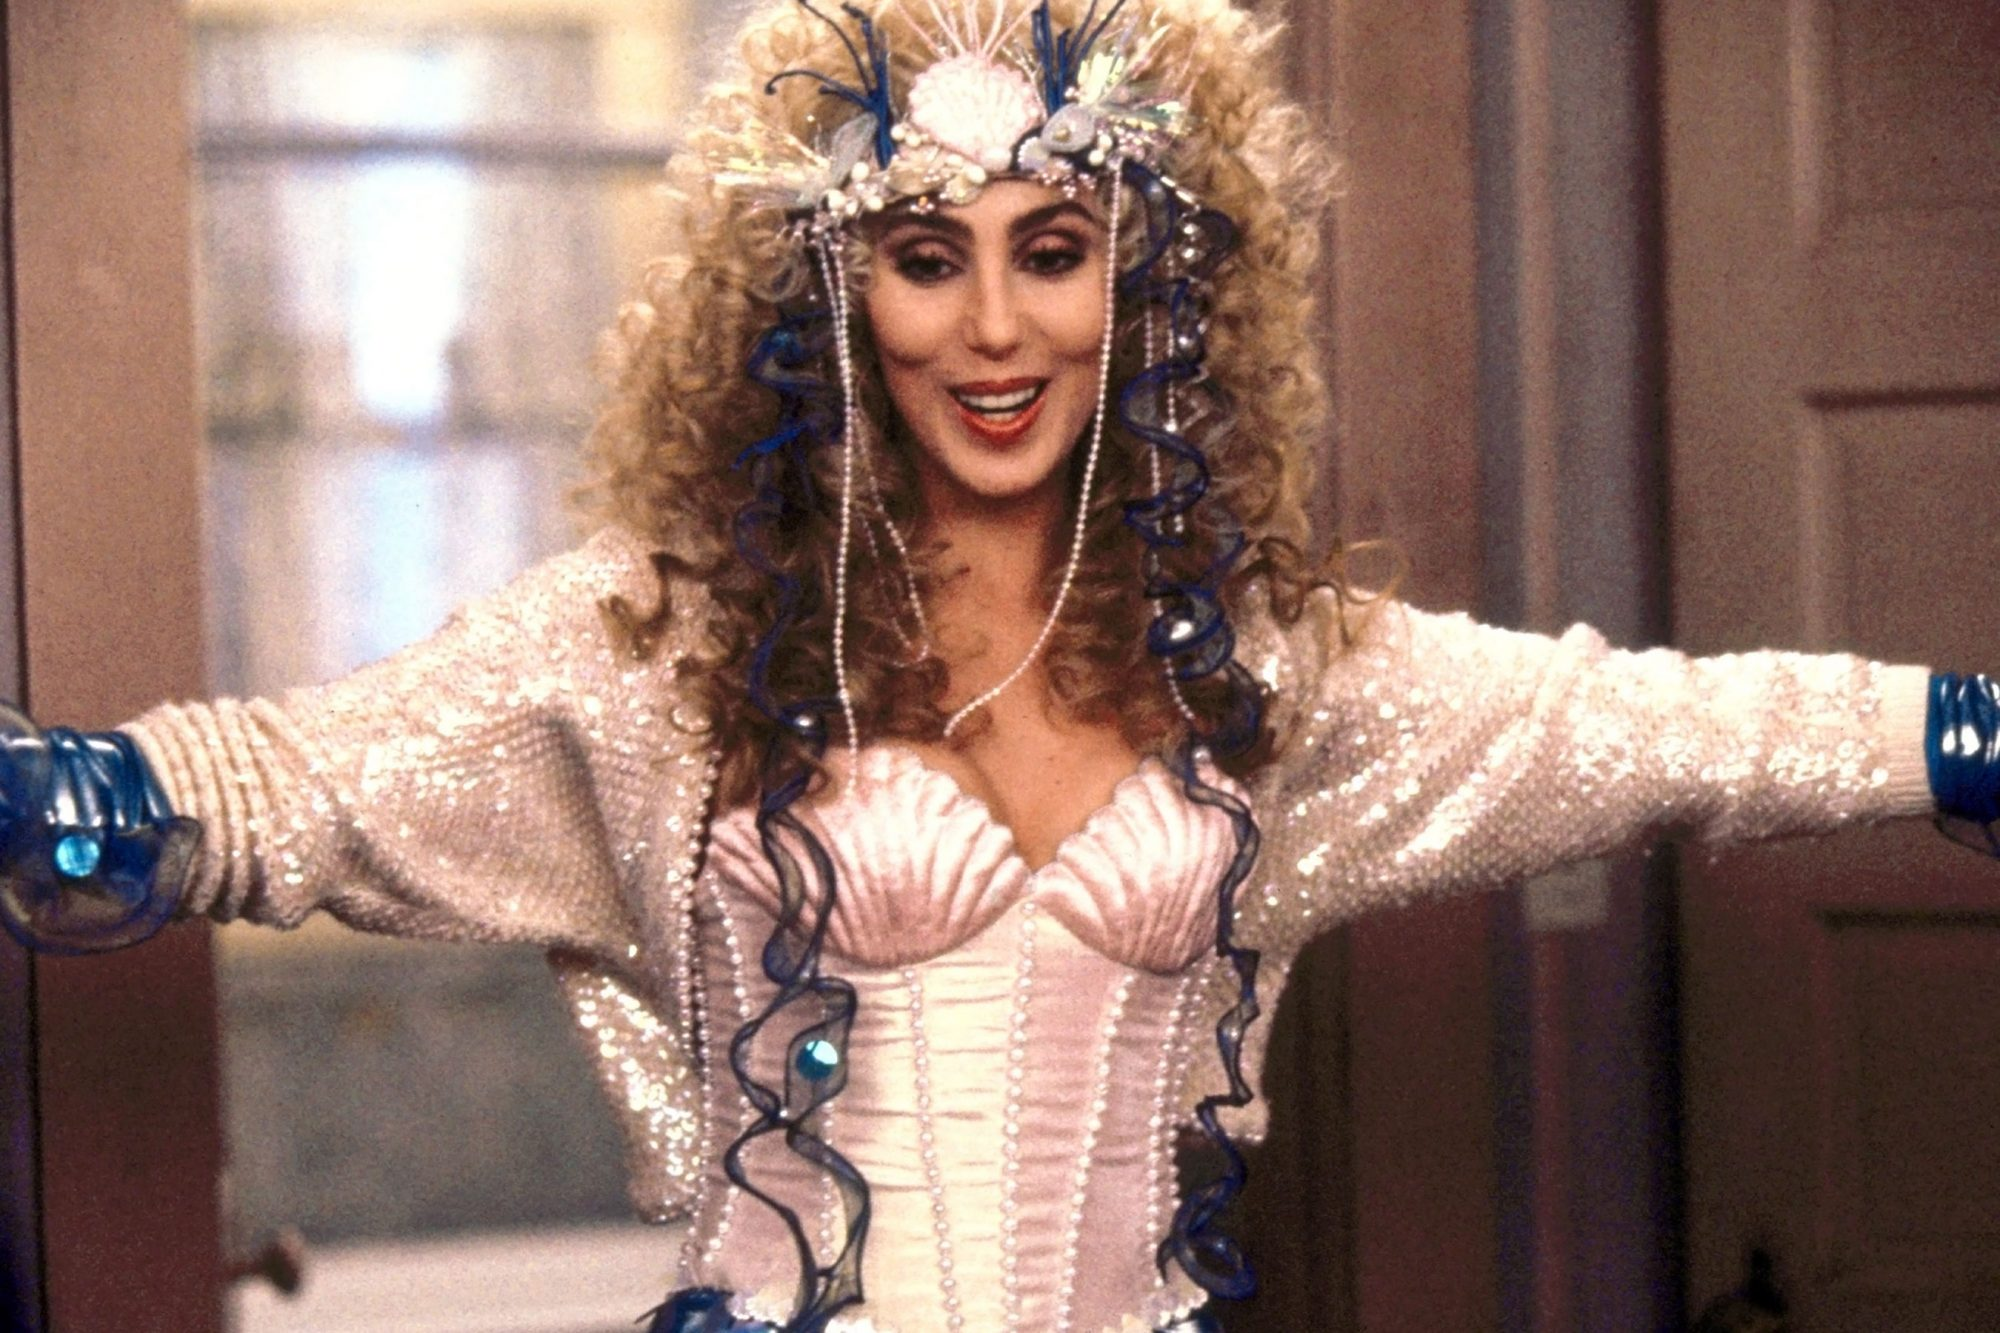 MERMAIDS, Cher, 1990, (c) Orion/courtesy Everett Collection